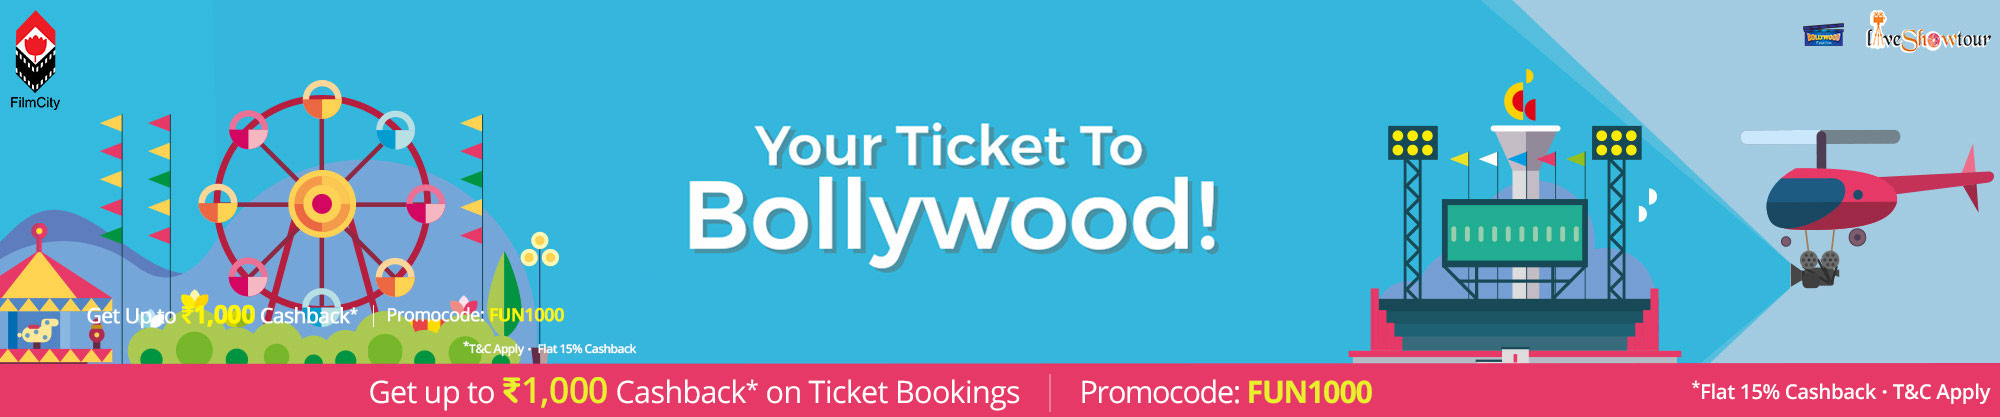 Mumbai Film City Tour in Mumbai – Find Ticket Price, Entry Fee and